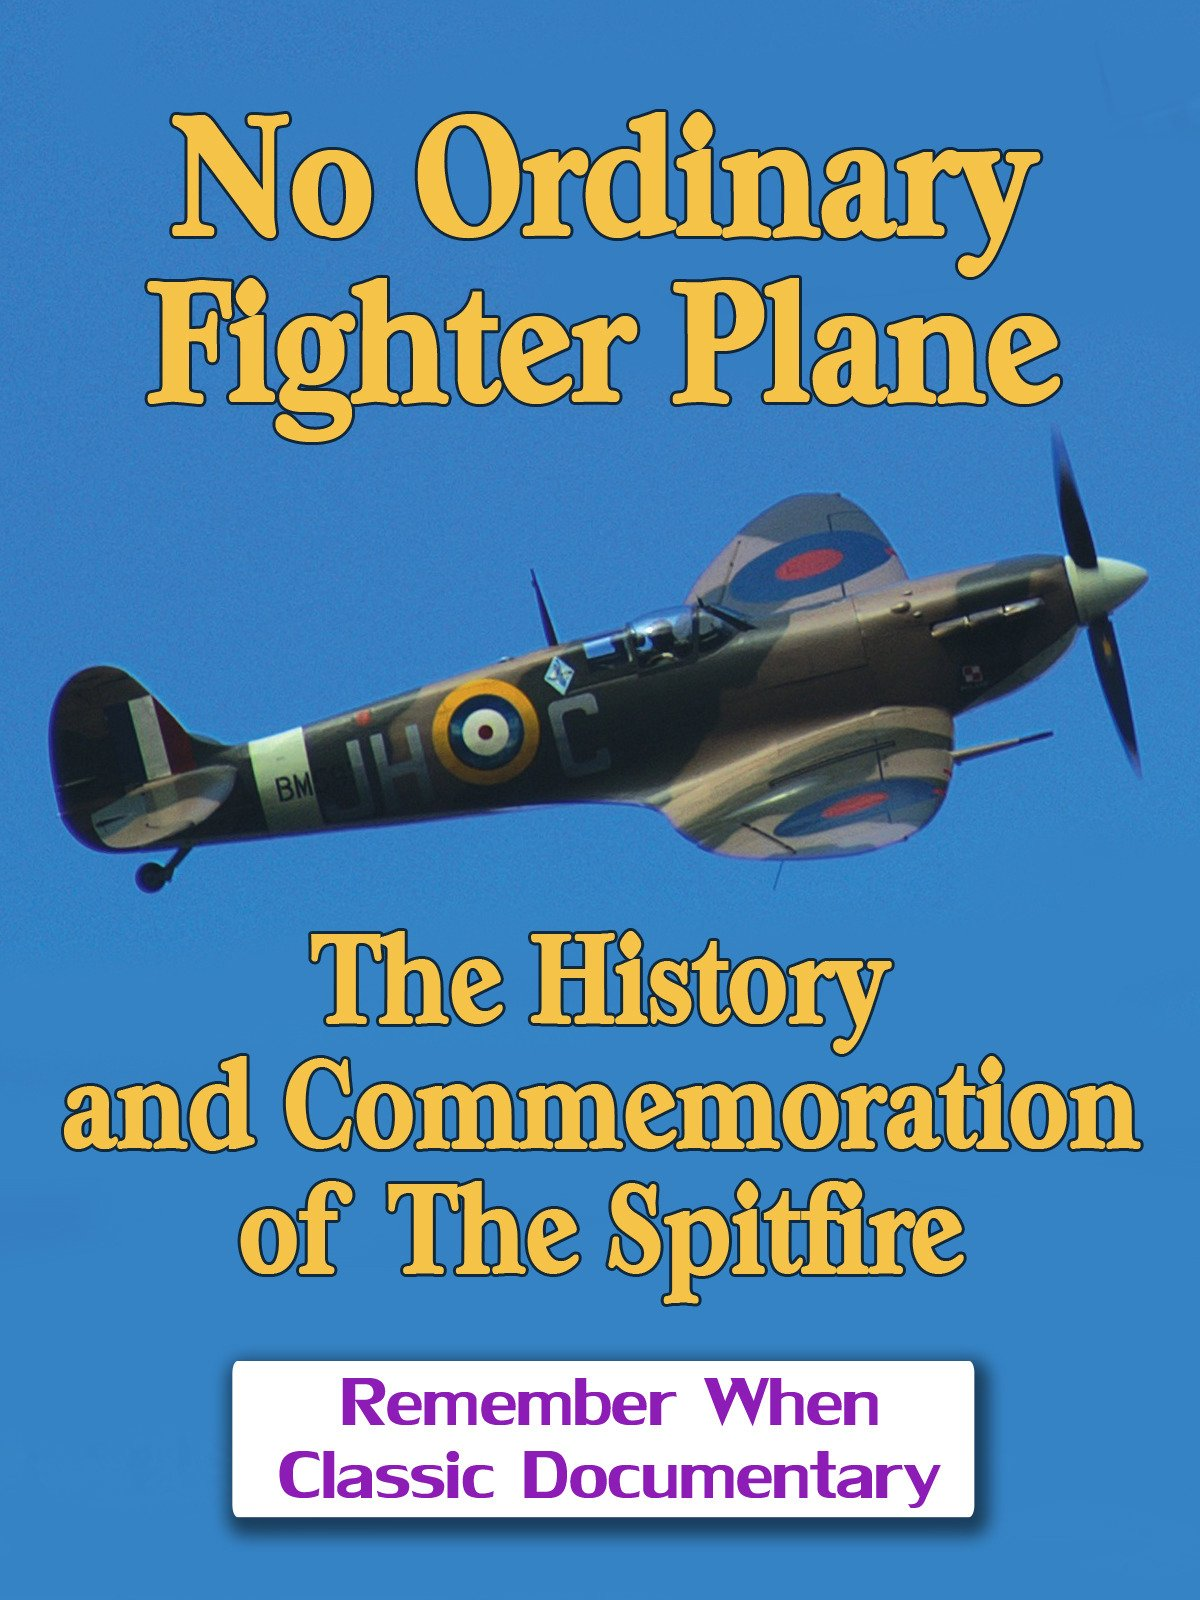 No Ordinary Fighter Plane - The History and Commemoration of The Spitfire on Amazon Prime Video UK